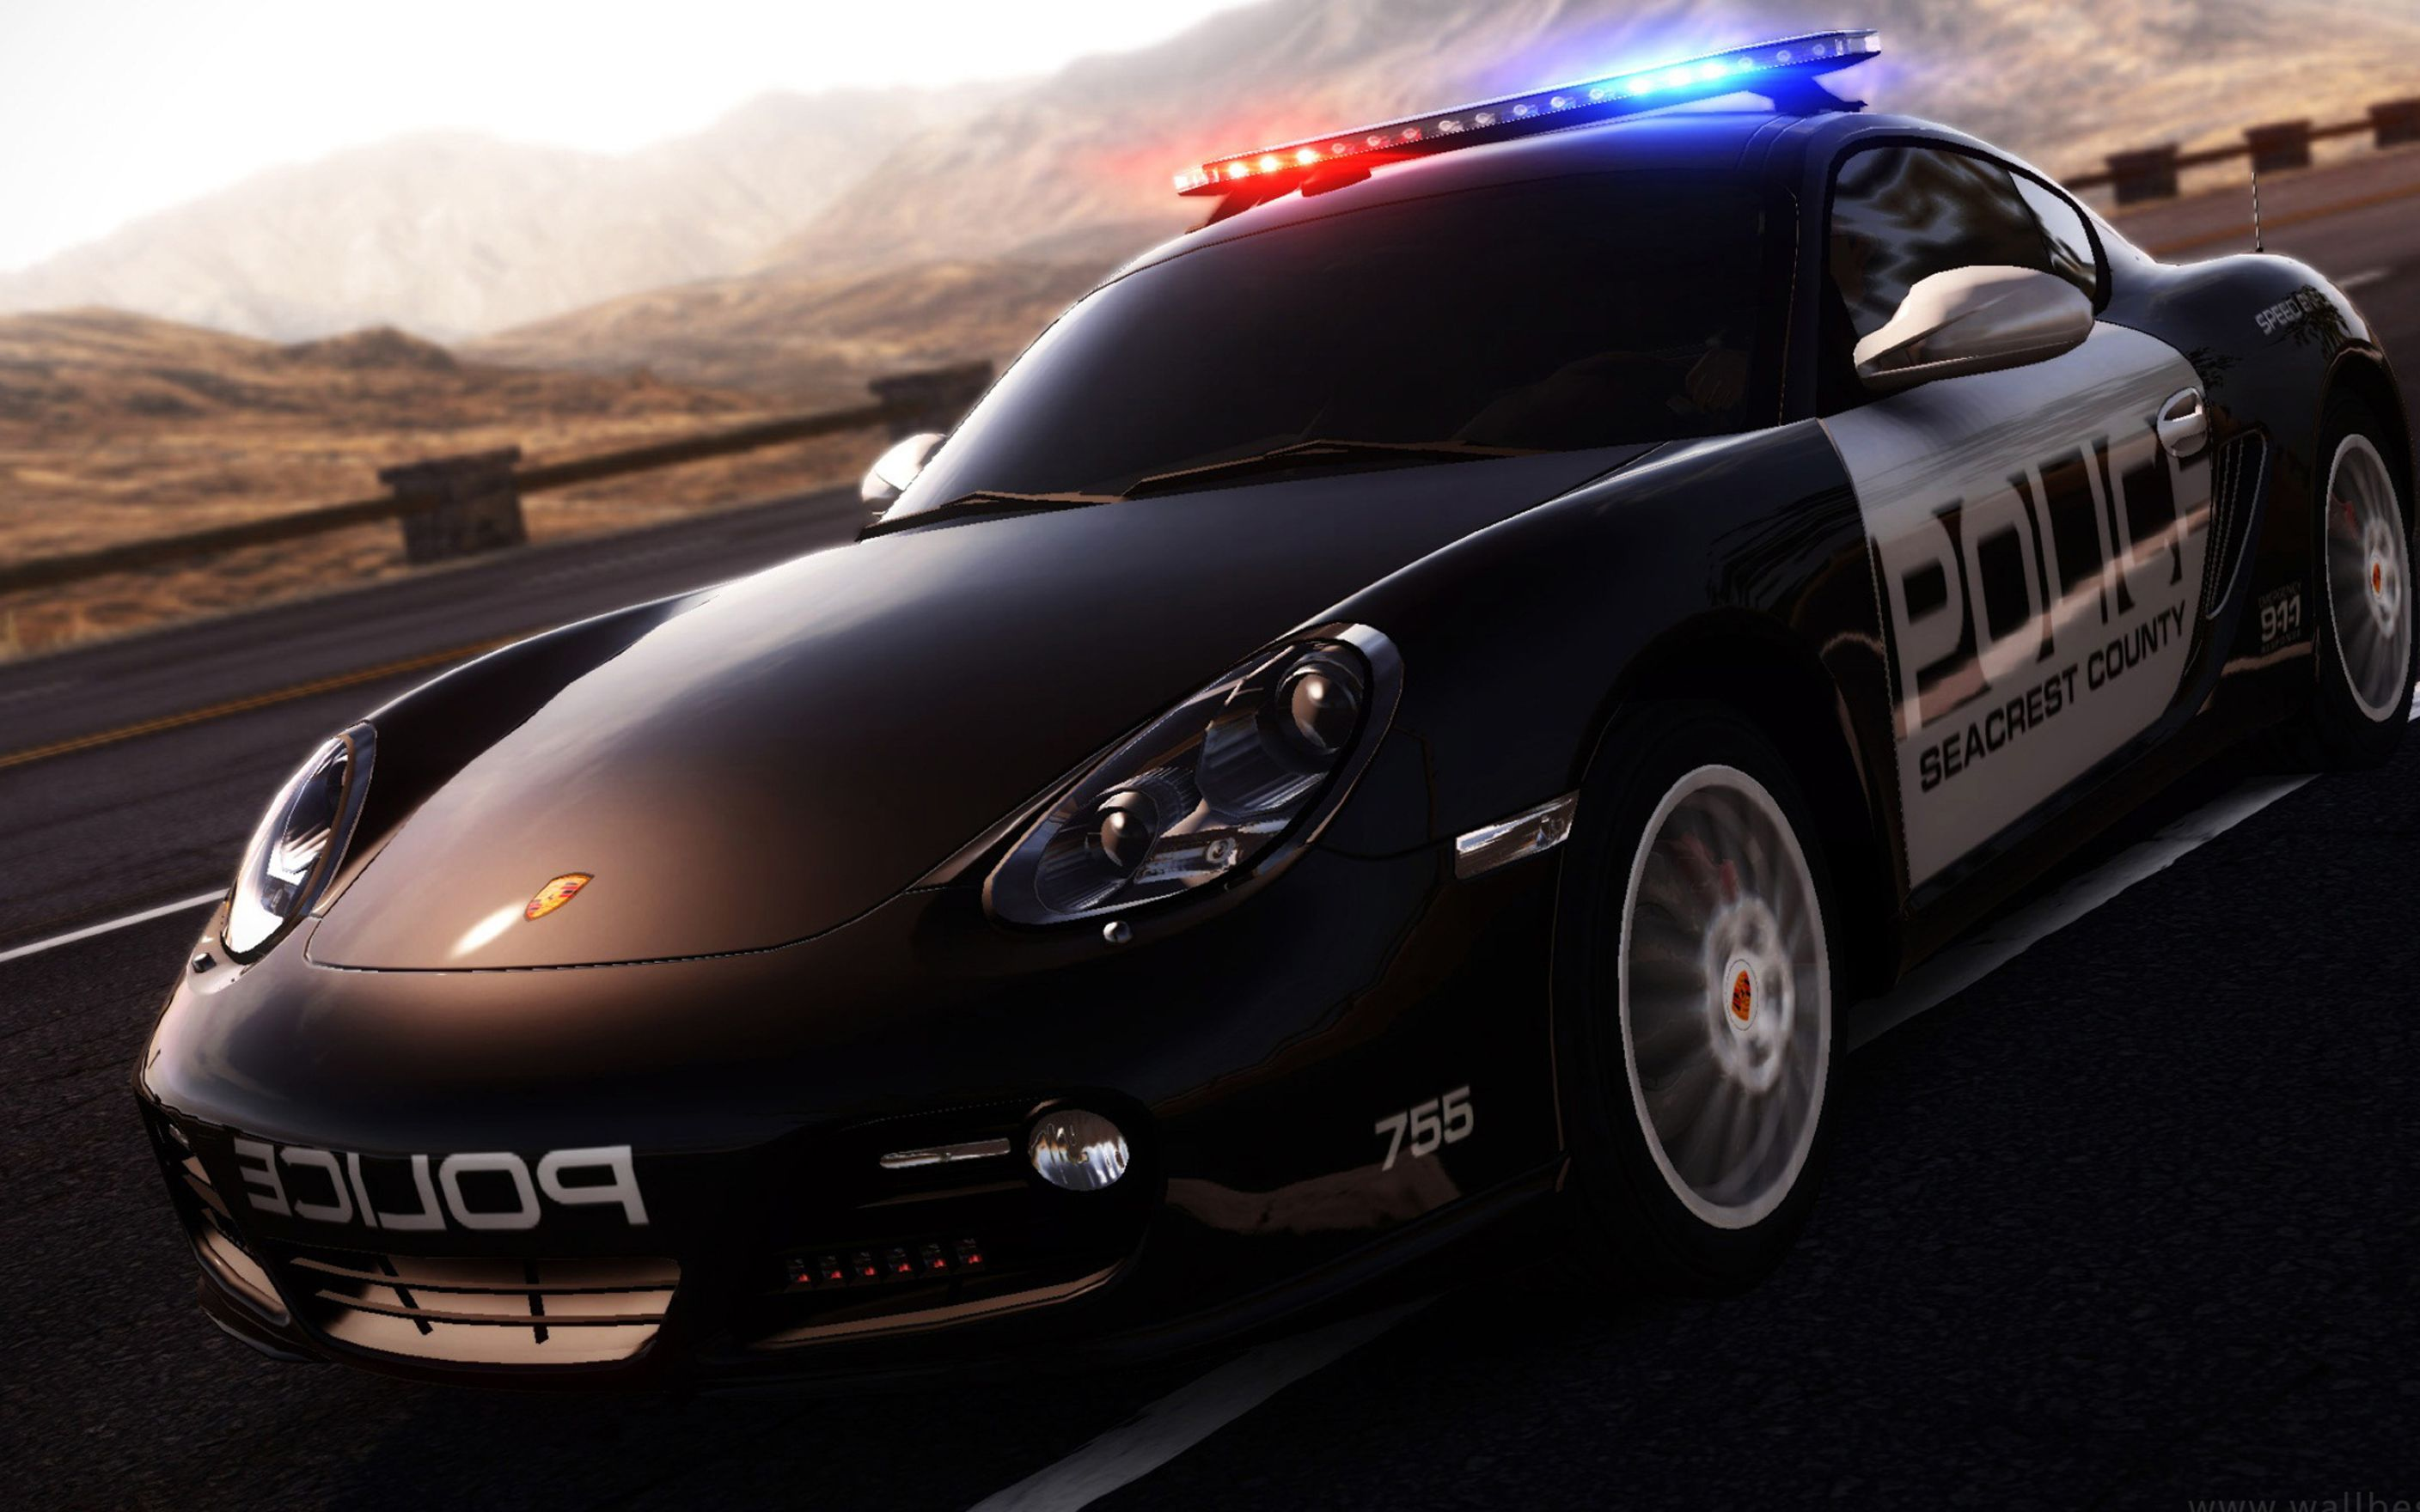 Download free HD 3D Police Car Desktop Backgrounds Wallpaper, image